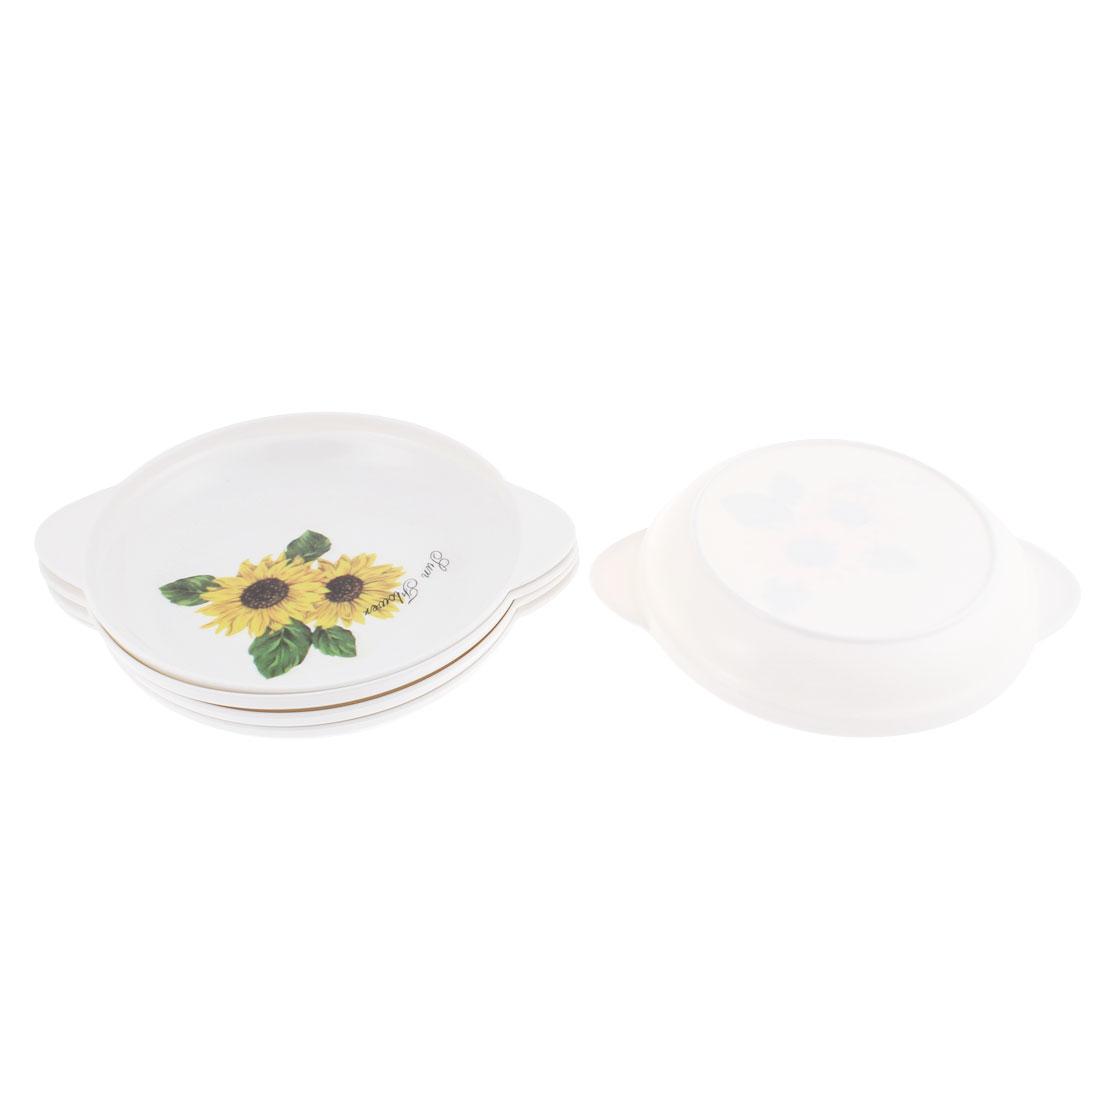 Home Floral Pattern Round Shaped Food Dinner Meat Plate Dish Container White 5pcs